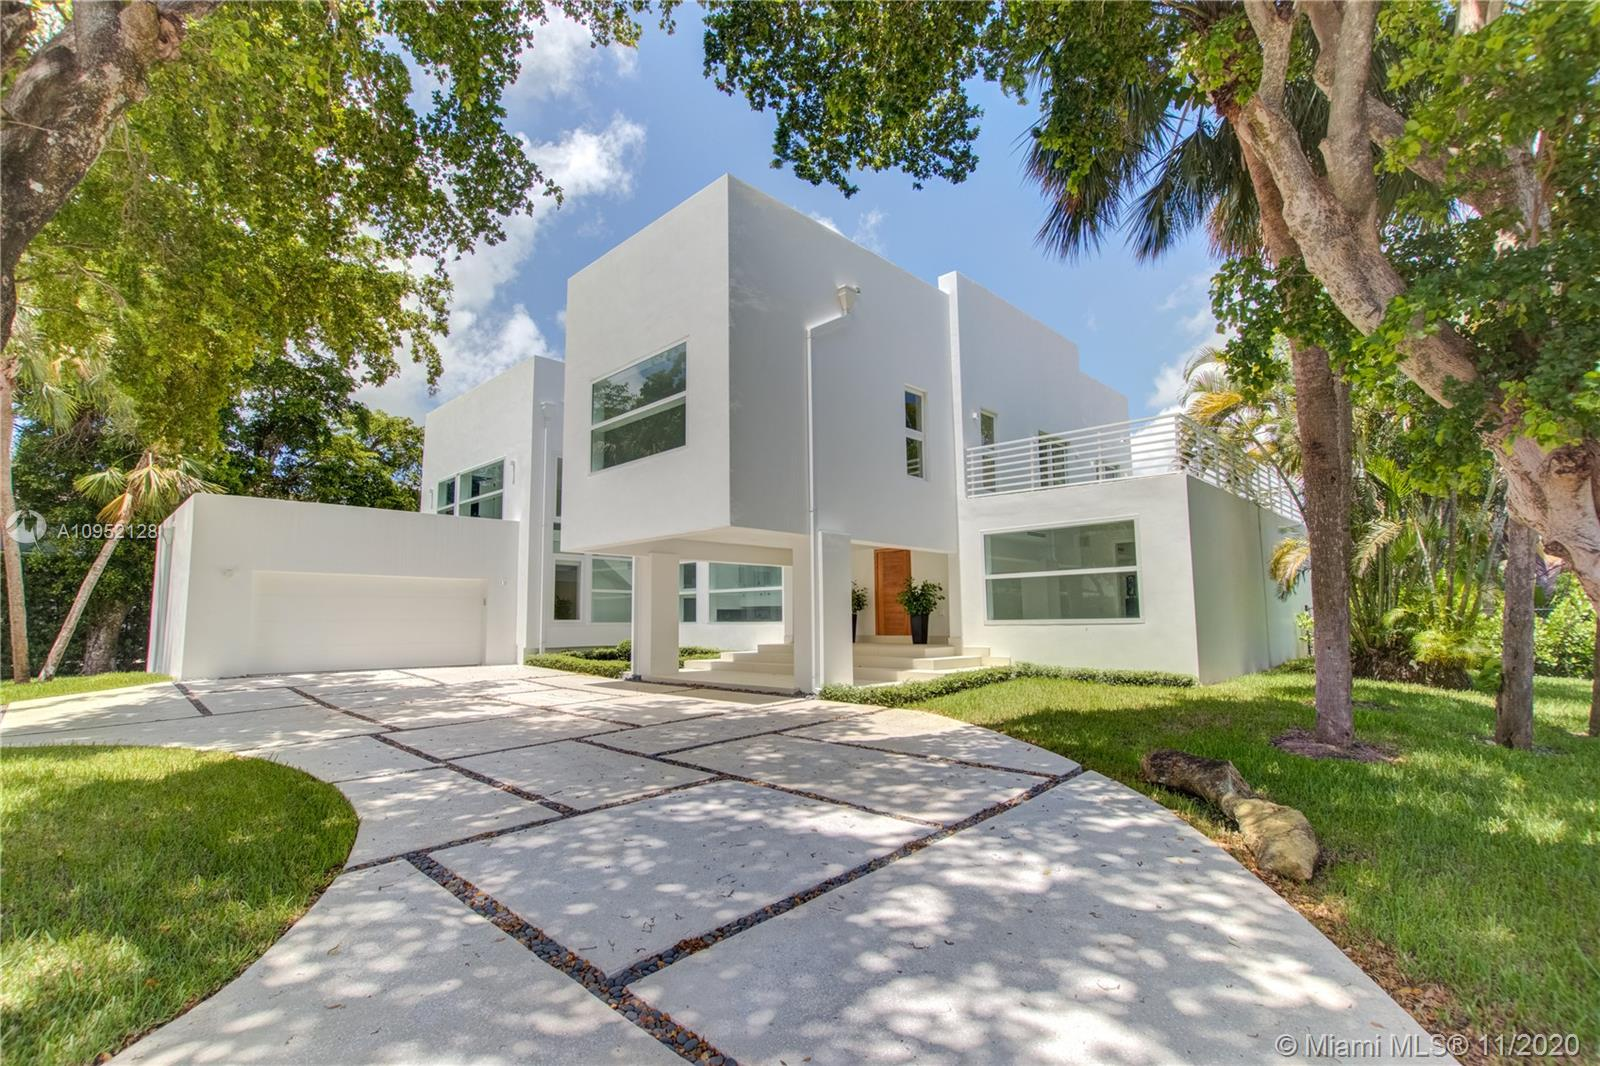 Details for 7810 Los Pinos Blvd, Coral Gables, FL 33143